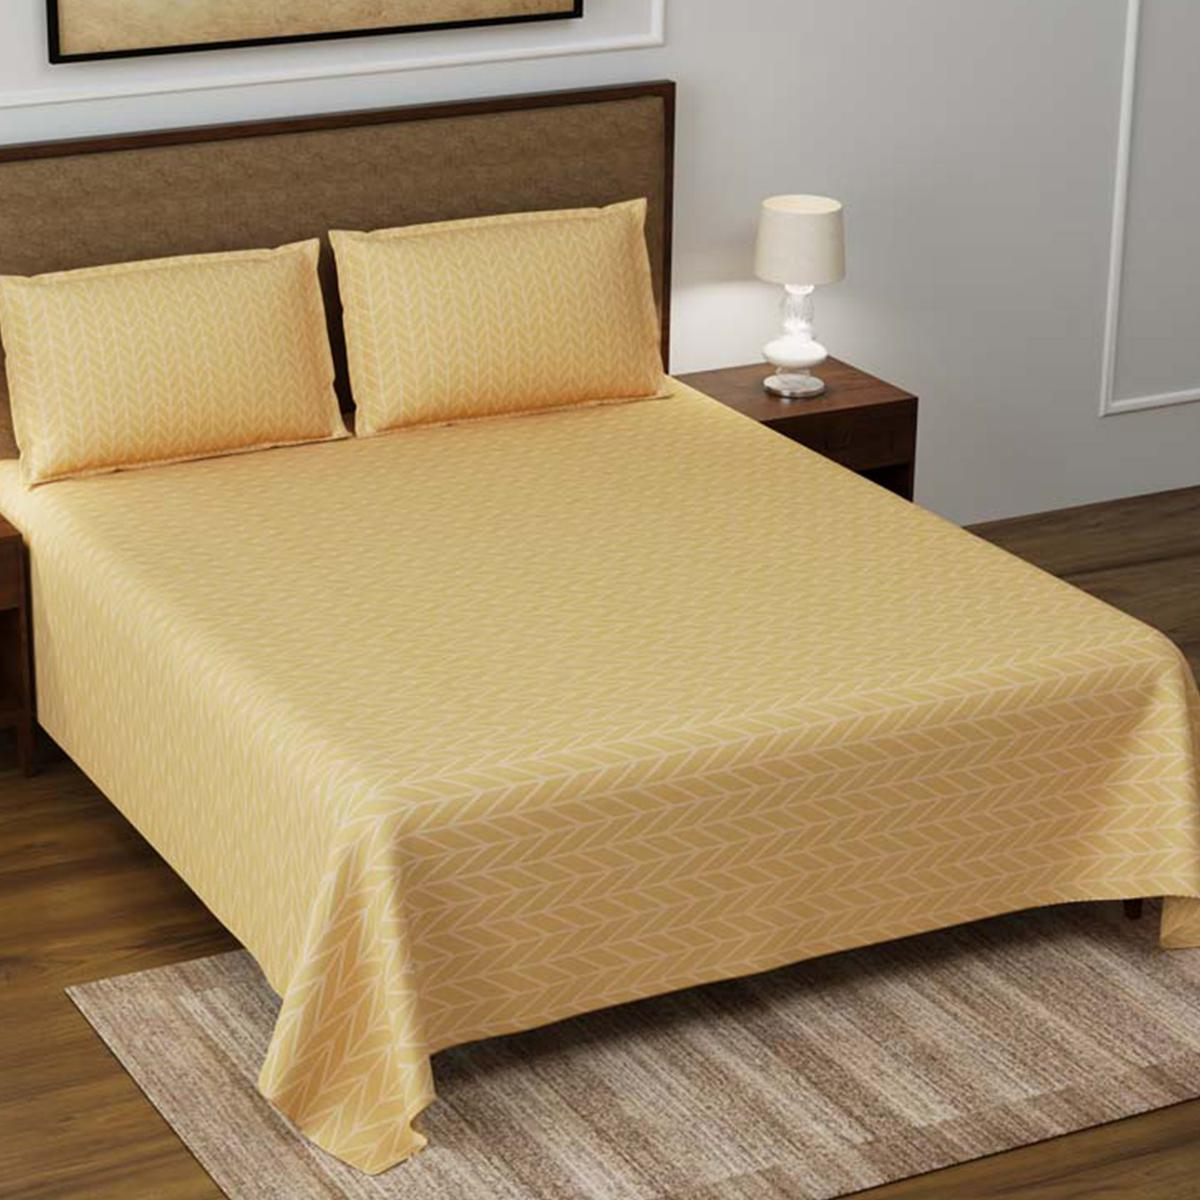 Creamish Gold Super Soft Double Bedsheet With 2 Pillow Cover